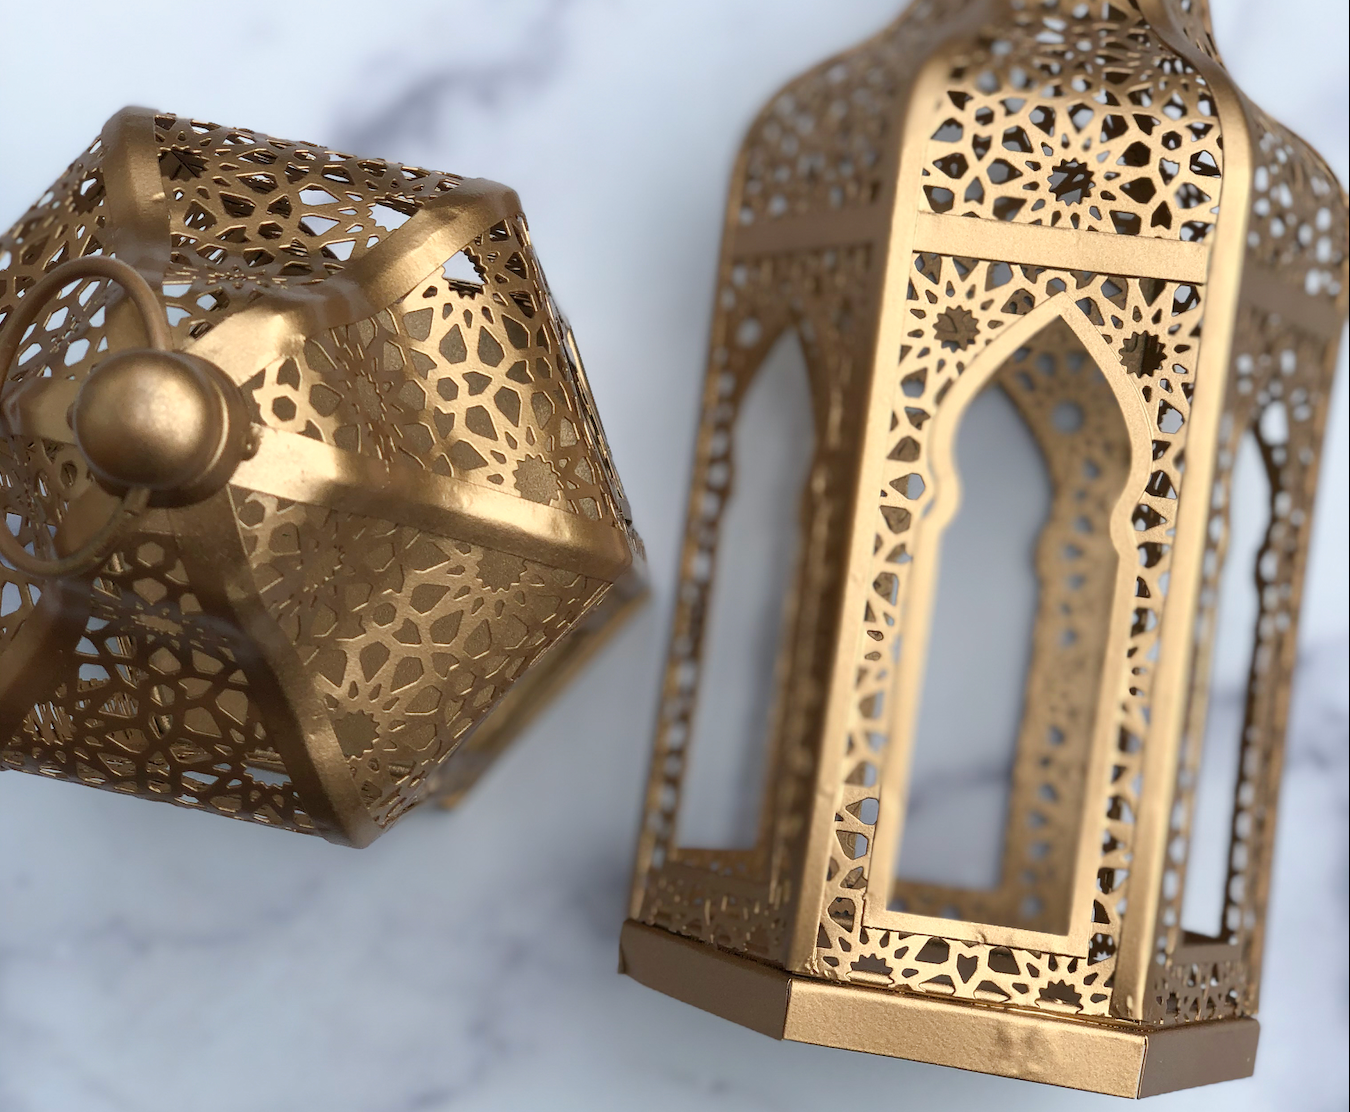 Details of our lanterns